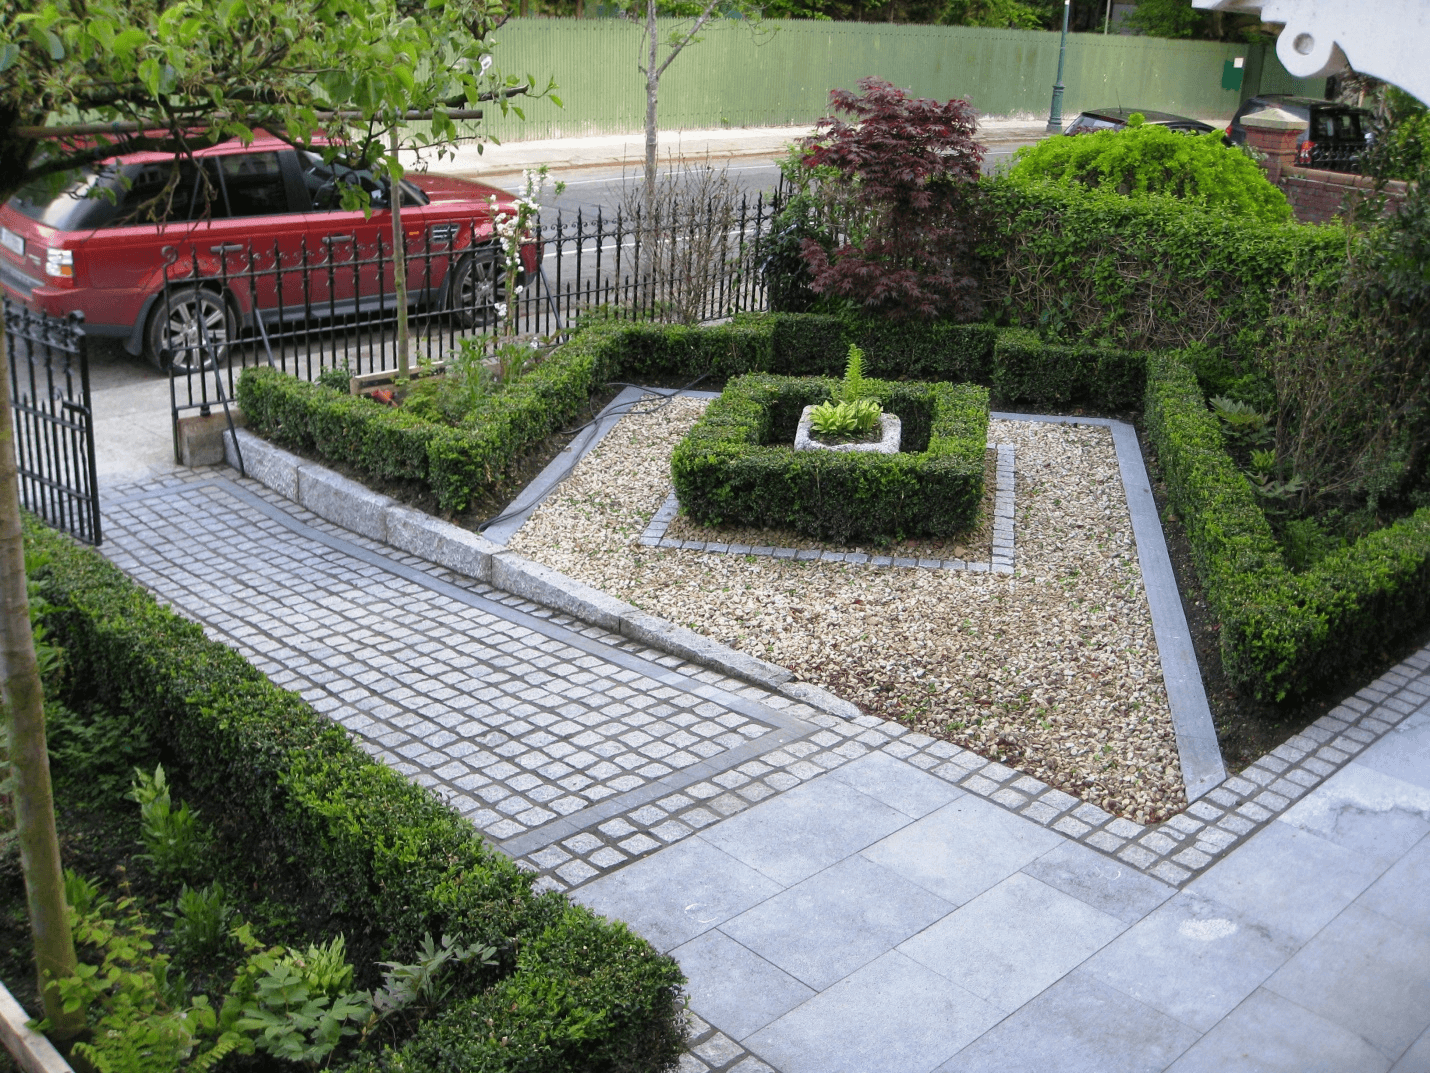 Tree and Hedge Design around walkway